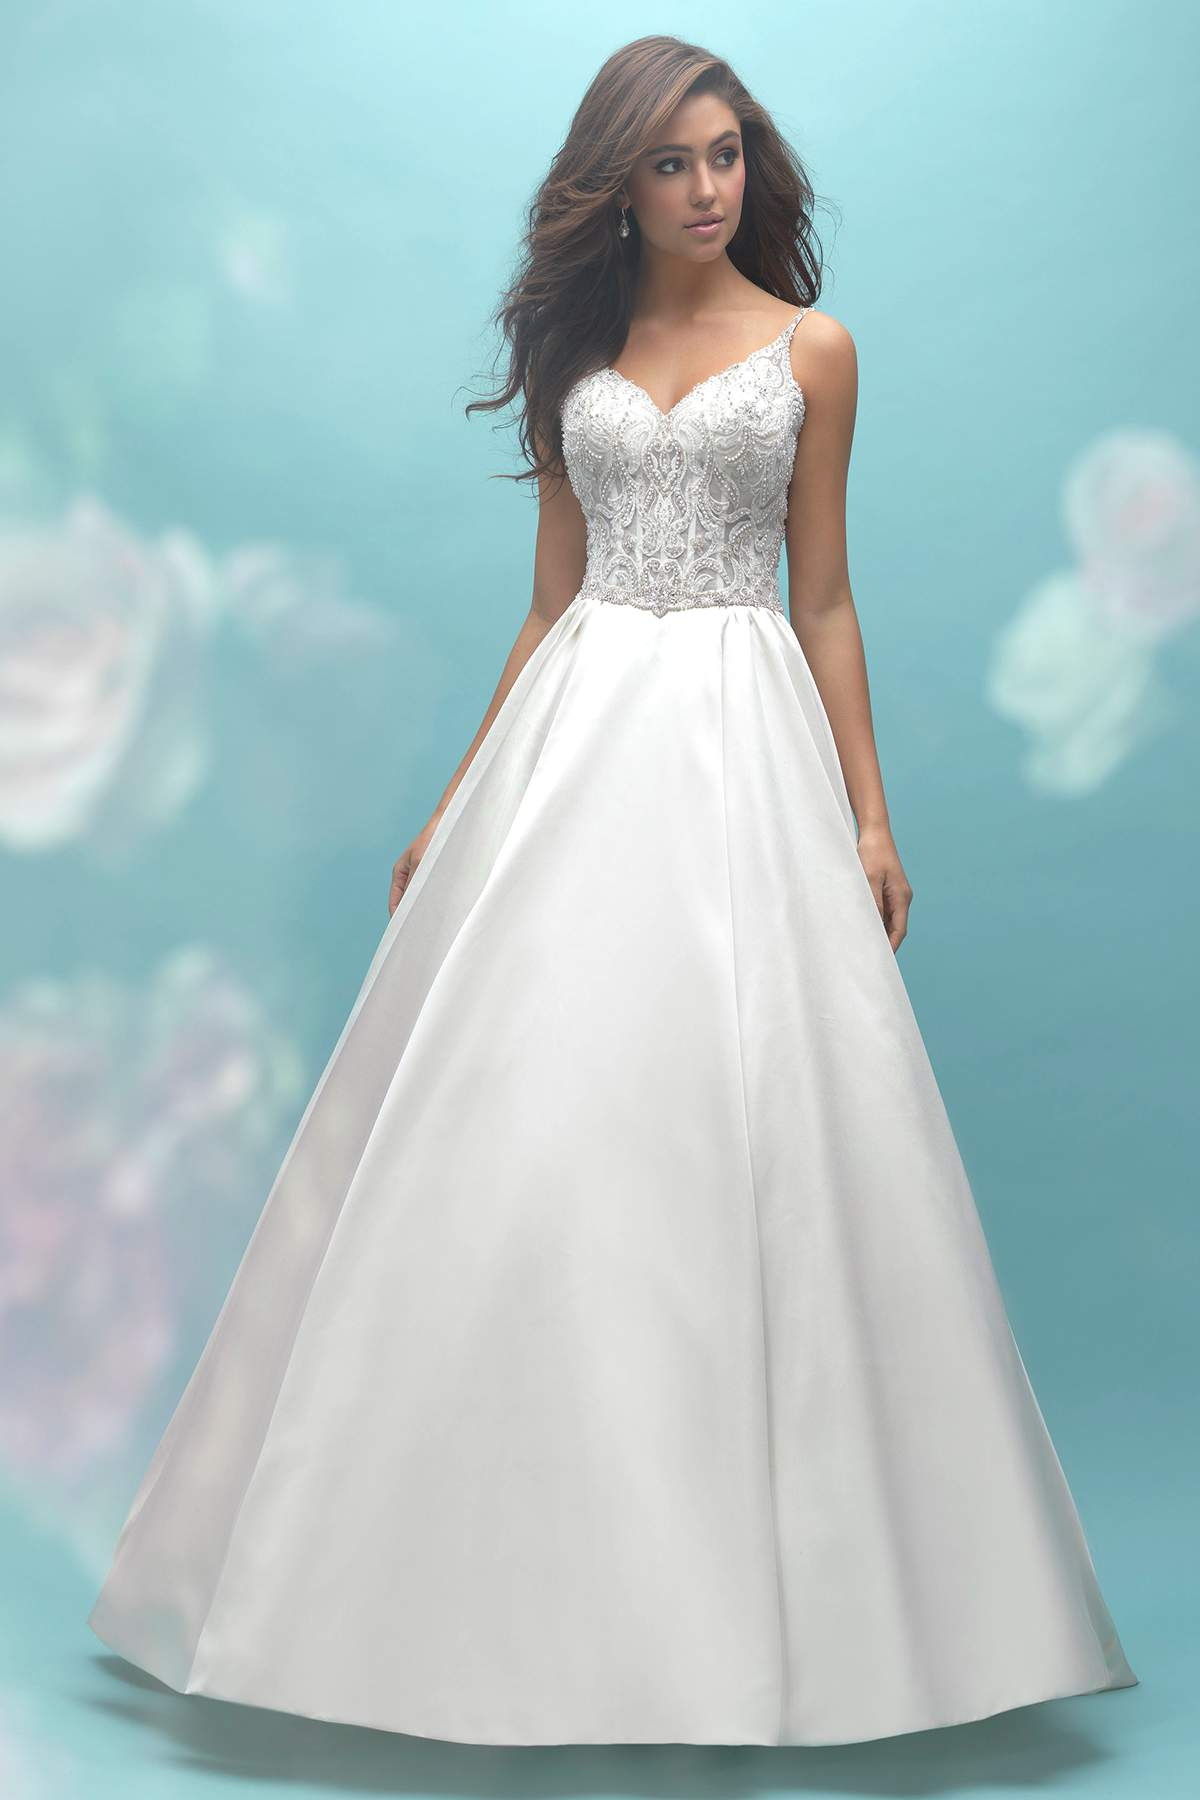 396c616e91b4 Style 9454 by Allure Bridals - Find Your Dream Dress